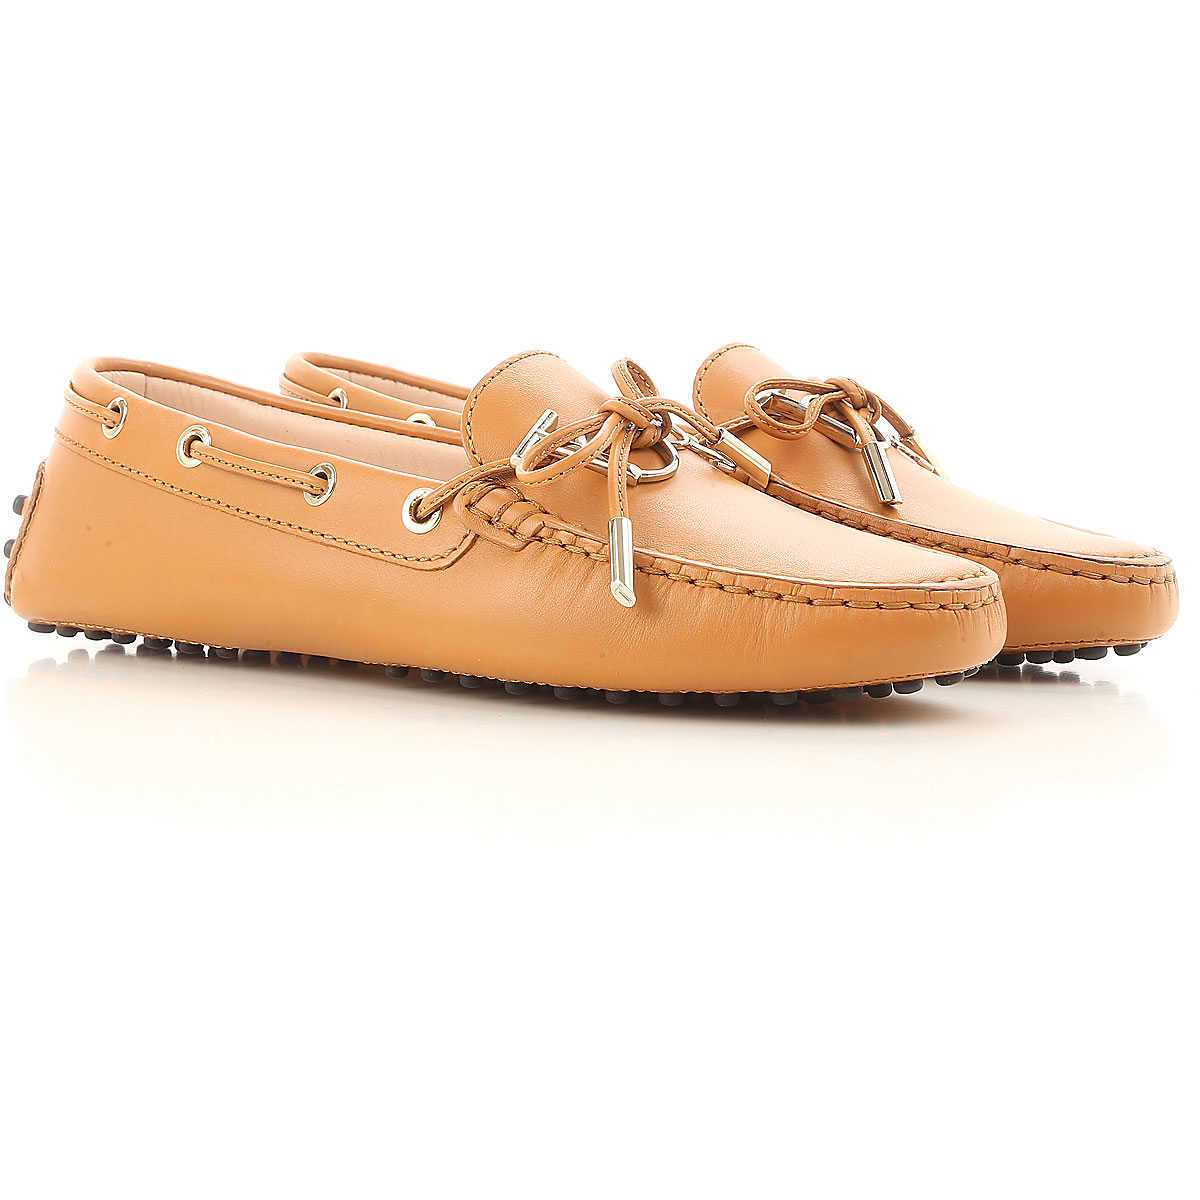 Tods Loafers for Women Light Leather Brown Canada - GOOFASH - Womens FLAT SHOES